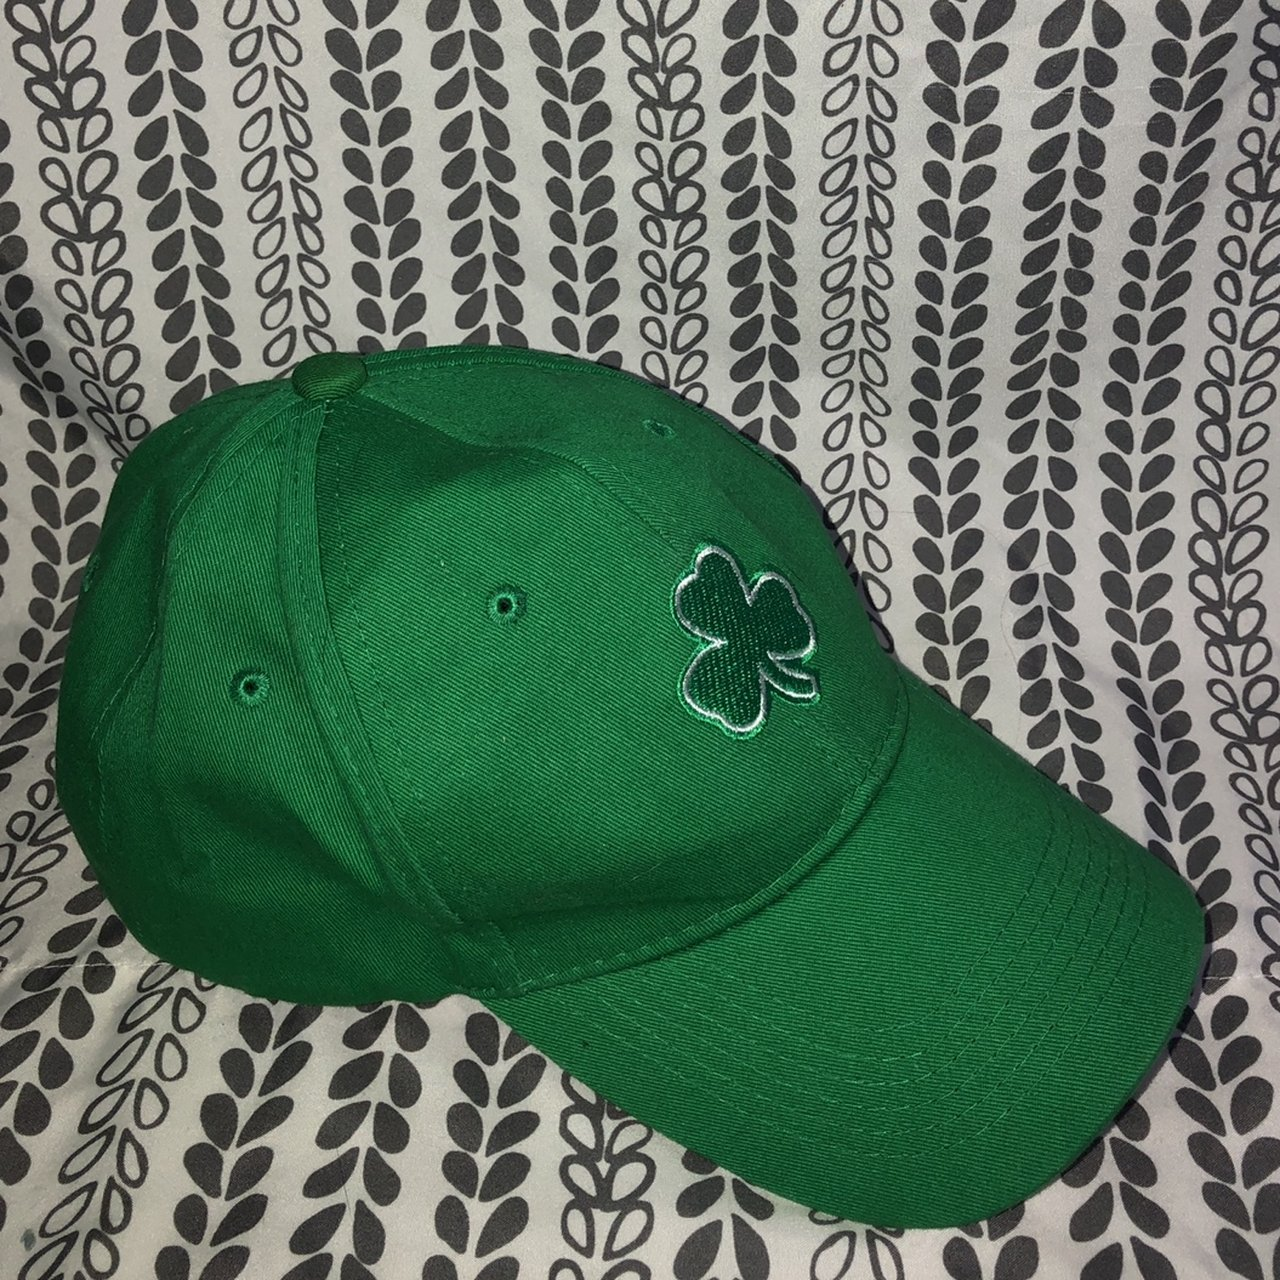 ☘️Green Clover Baseball Cap☘ Perfect for St. Patrick s Day - Depop f4c3ae10063